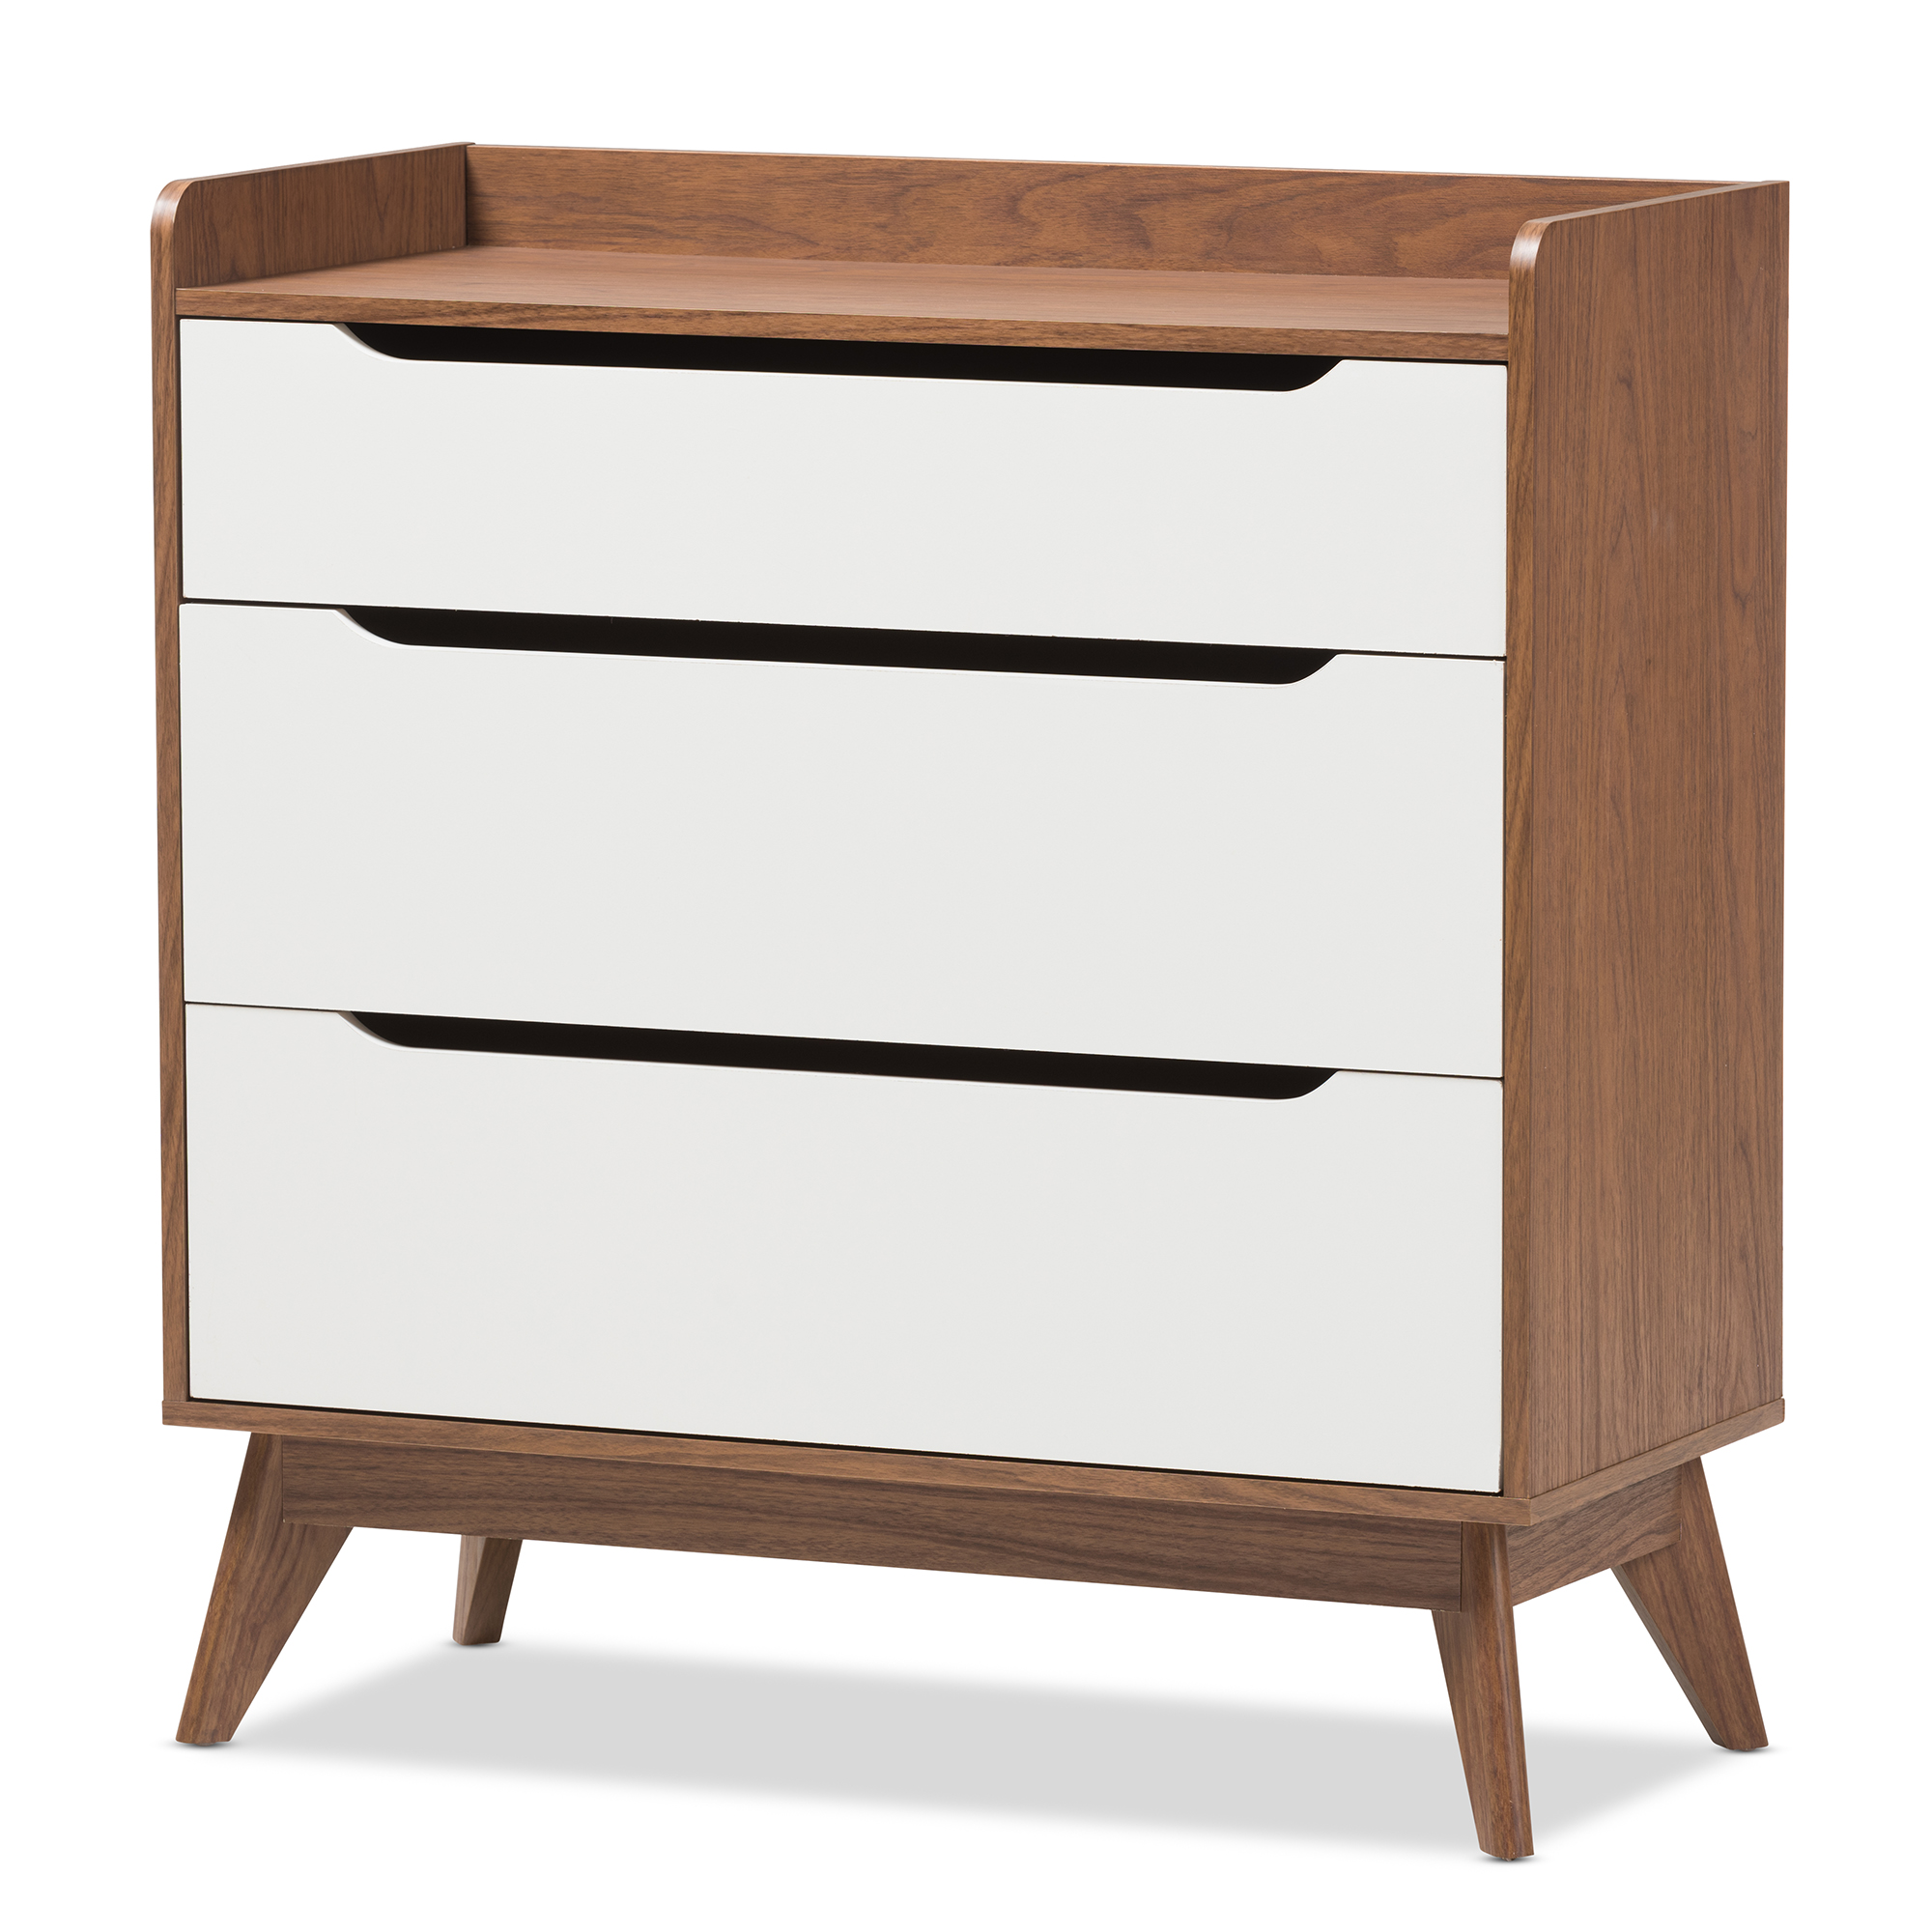 drawer bedside plc product corona seconique pine chest distressed white waxed info in lrg